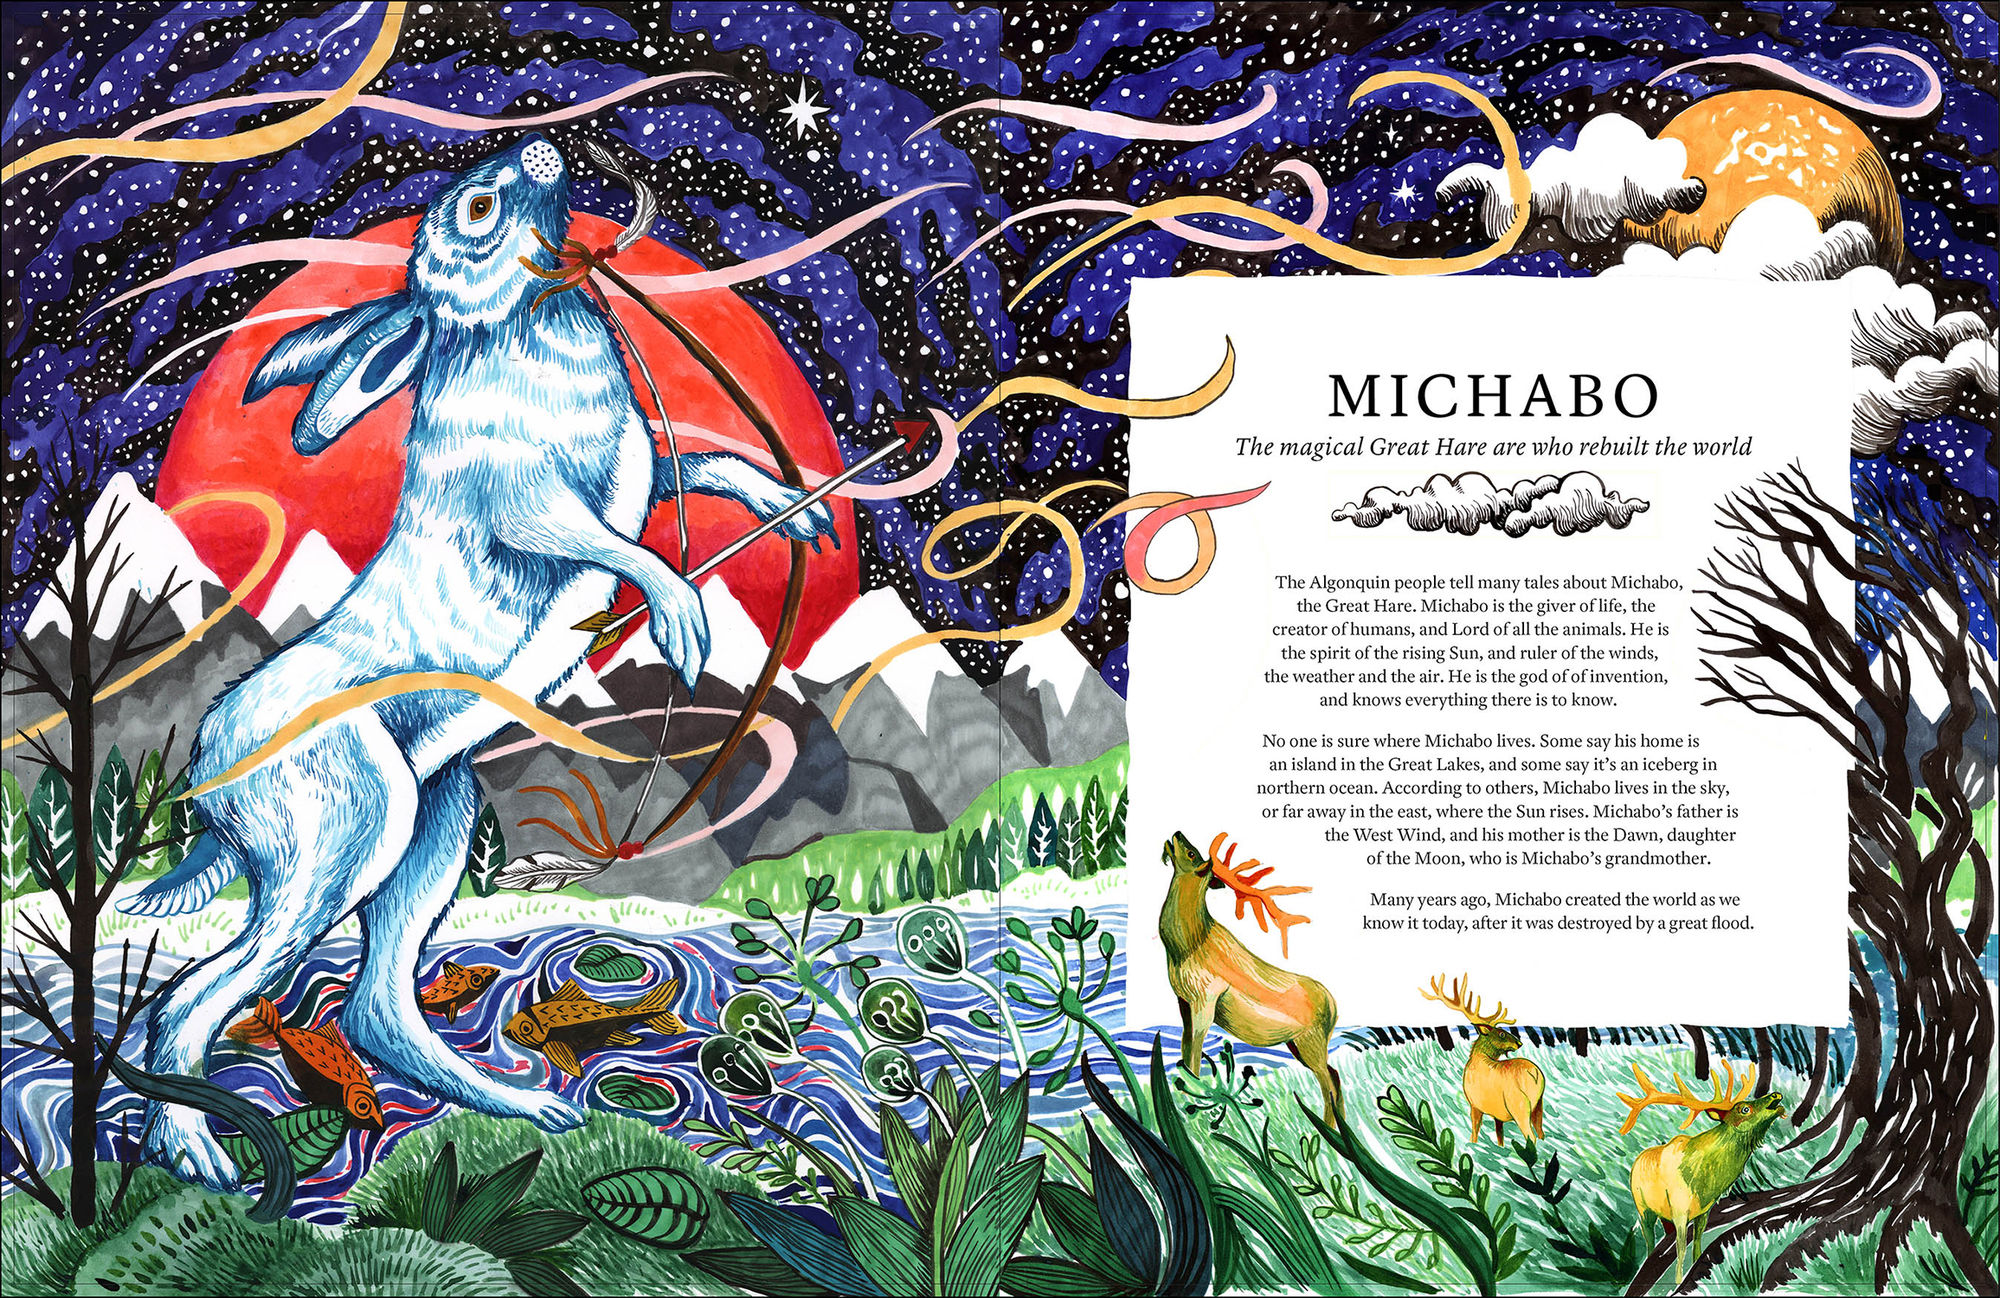 'Mythopedia - An Encyclopedia of Mythical Beasts and Their Magical Tales' by Good Wives and Warriors c/o 2AGENTEN